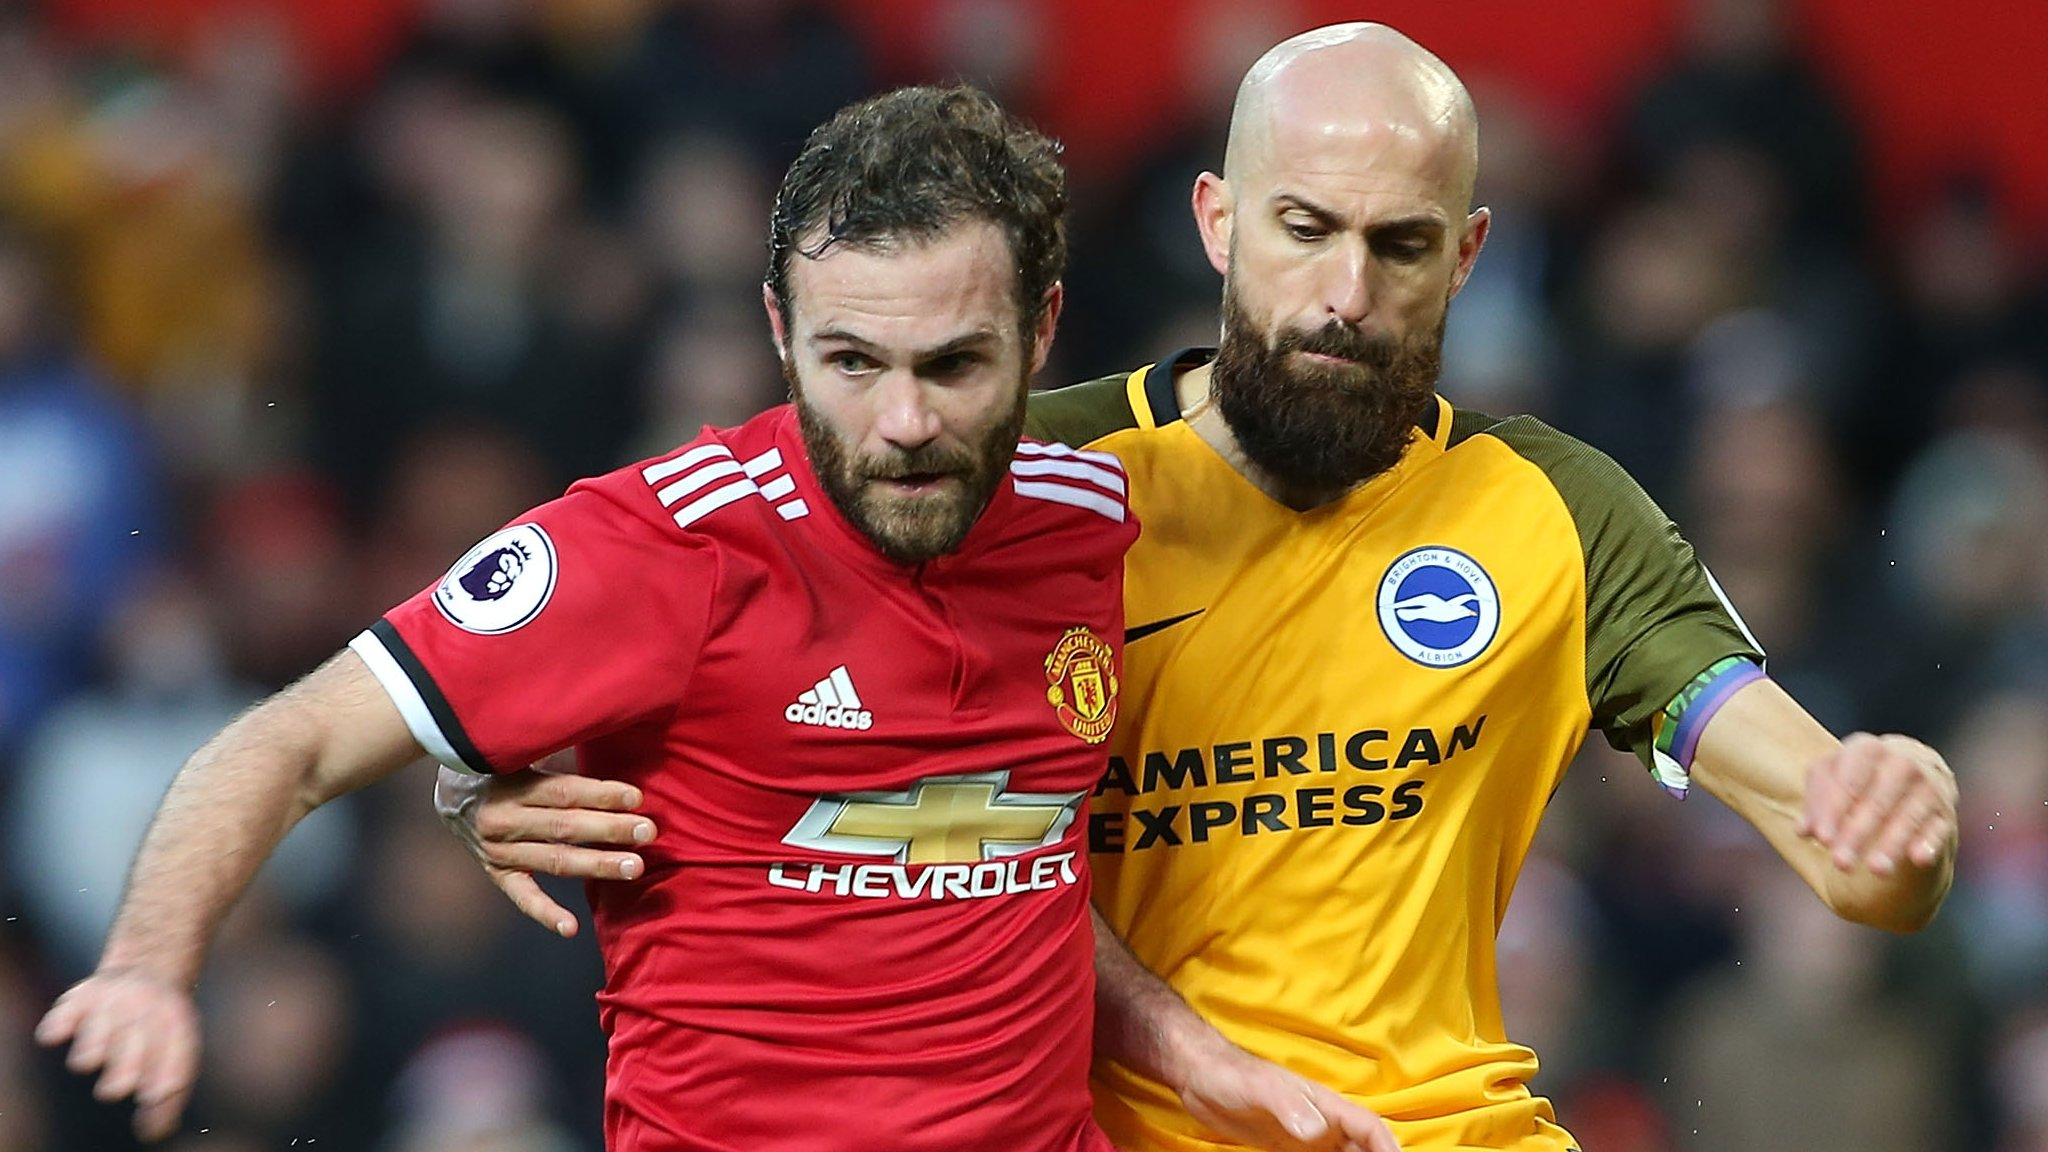 Man Utd to face Brighton in FA Cup last eight